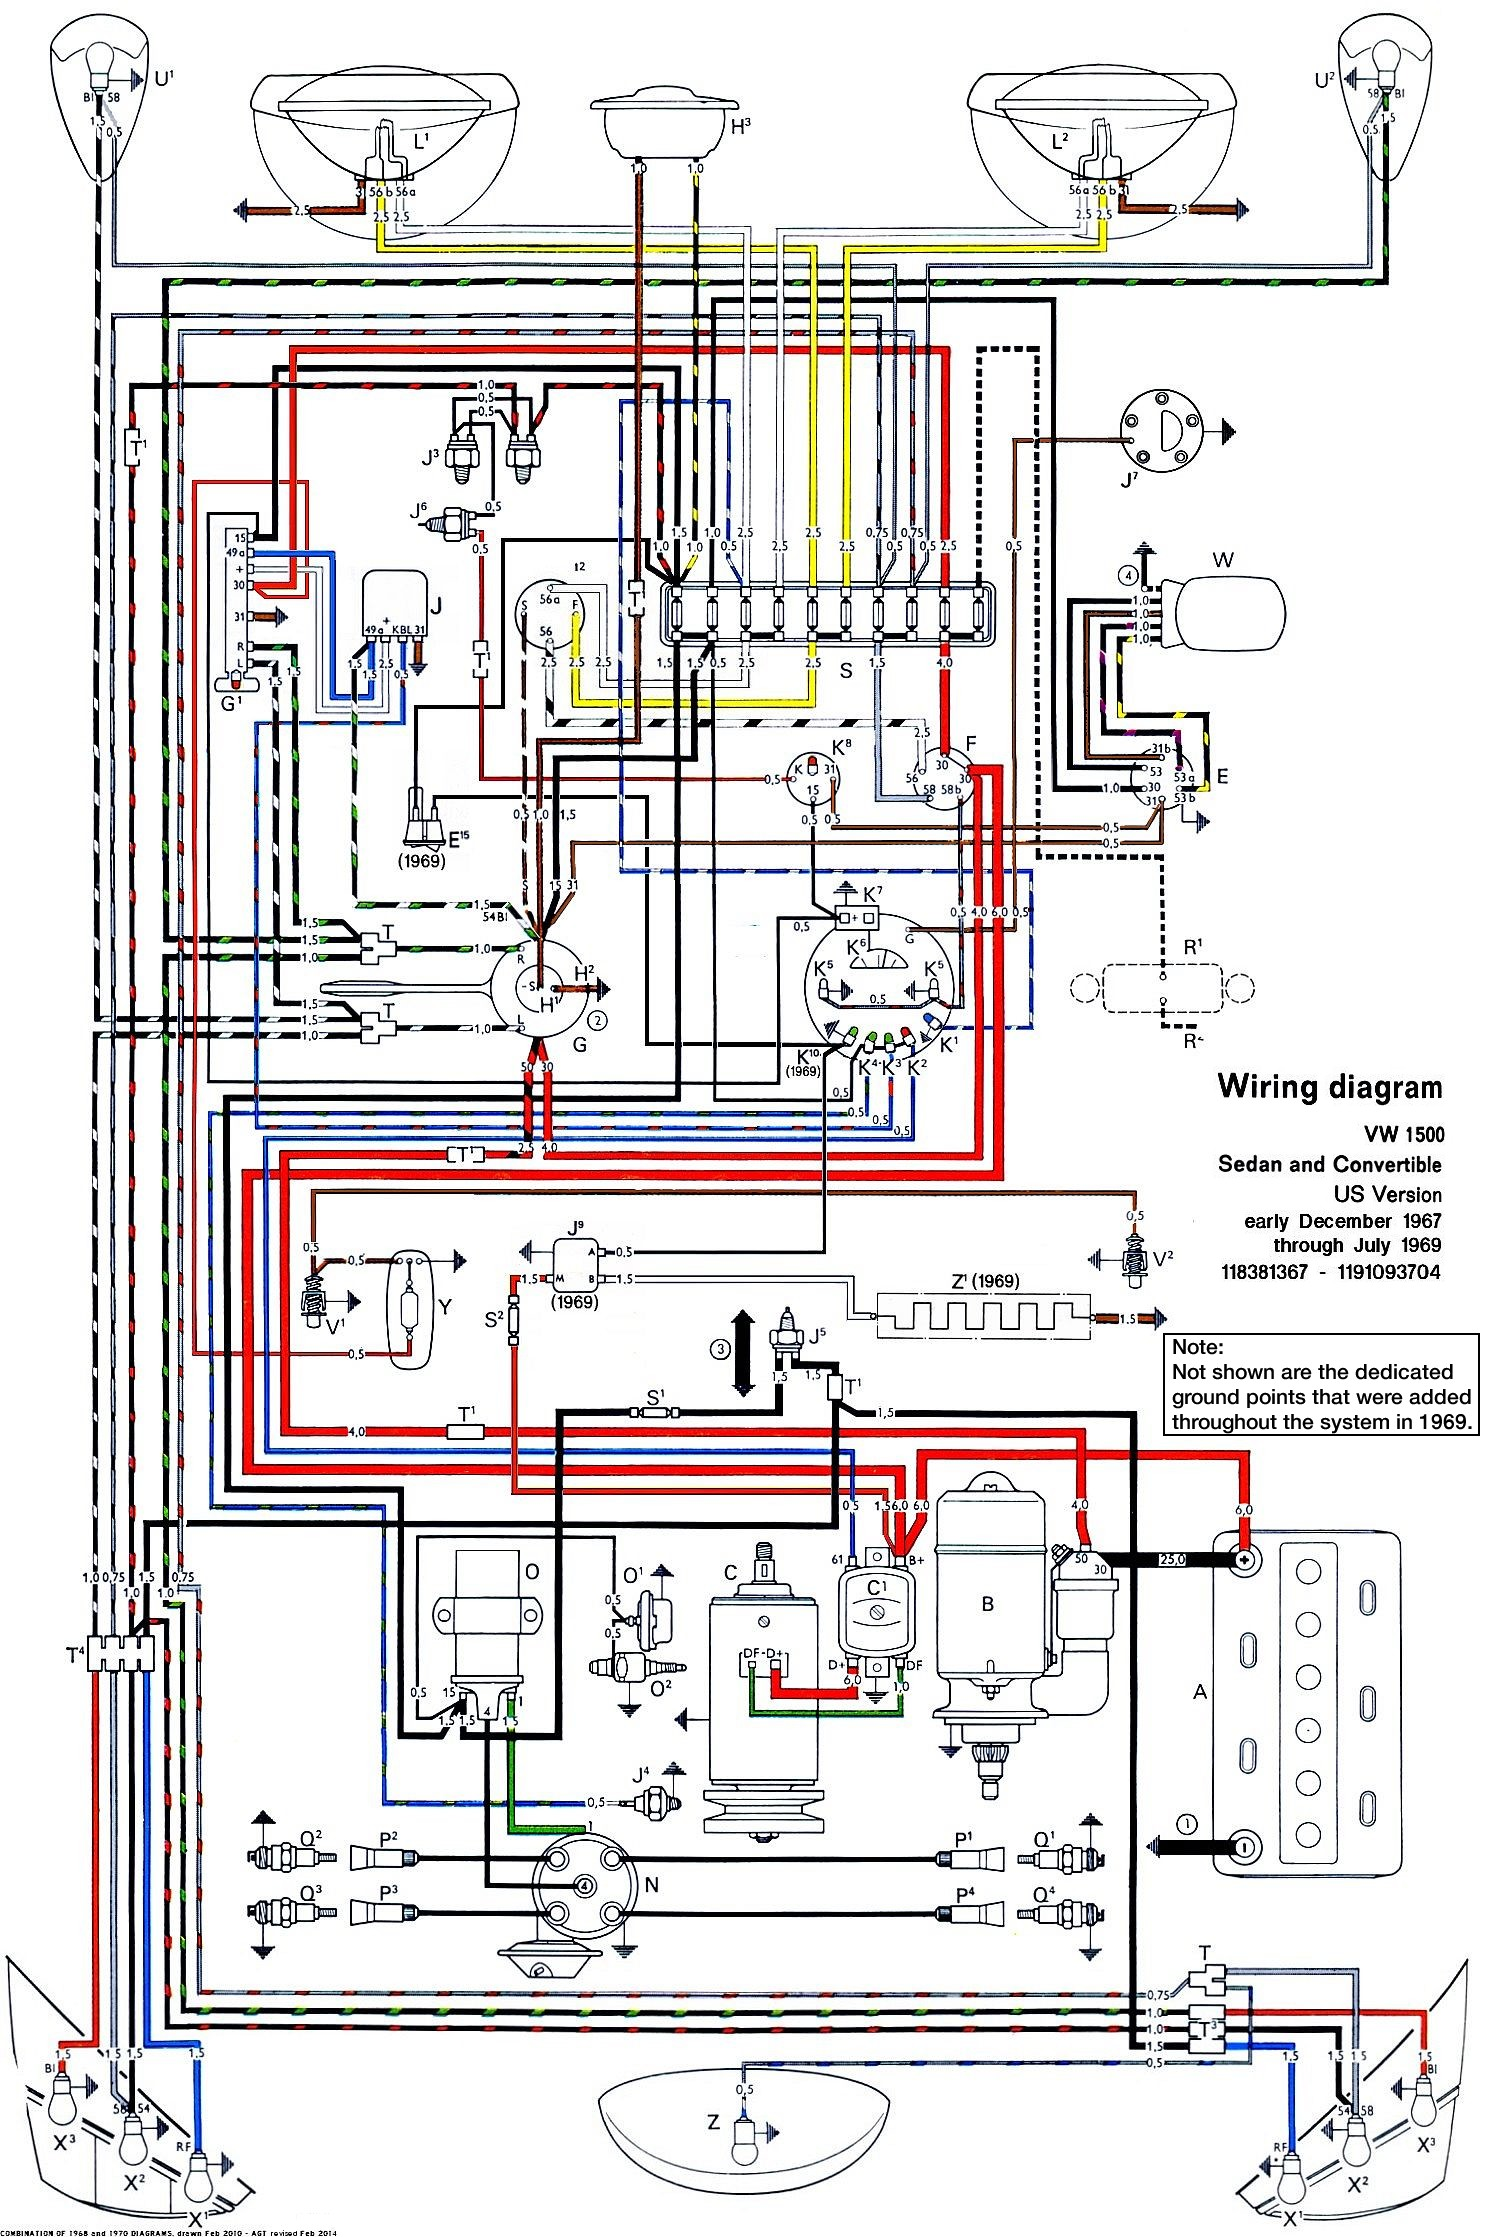 65 Bug Ignition Coil Wiring Diagram Library 73 Vw Alternator 1963 Type 1 Get Free Image About